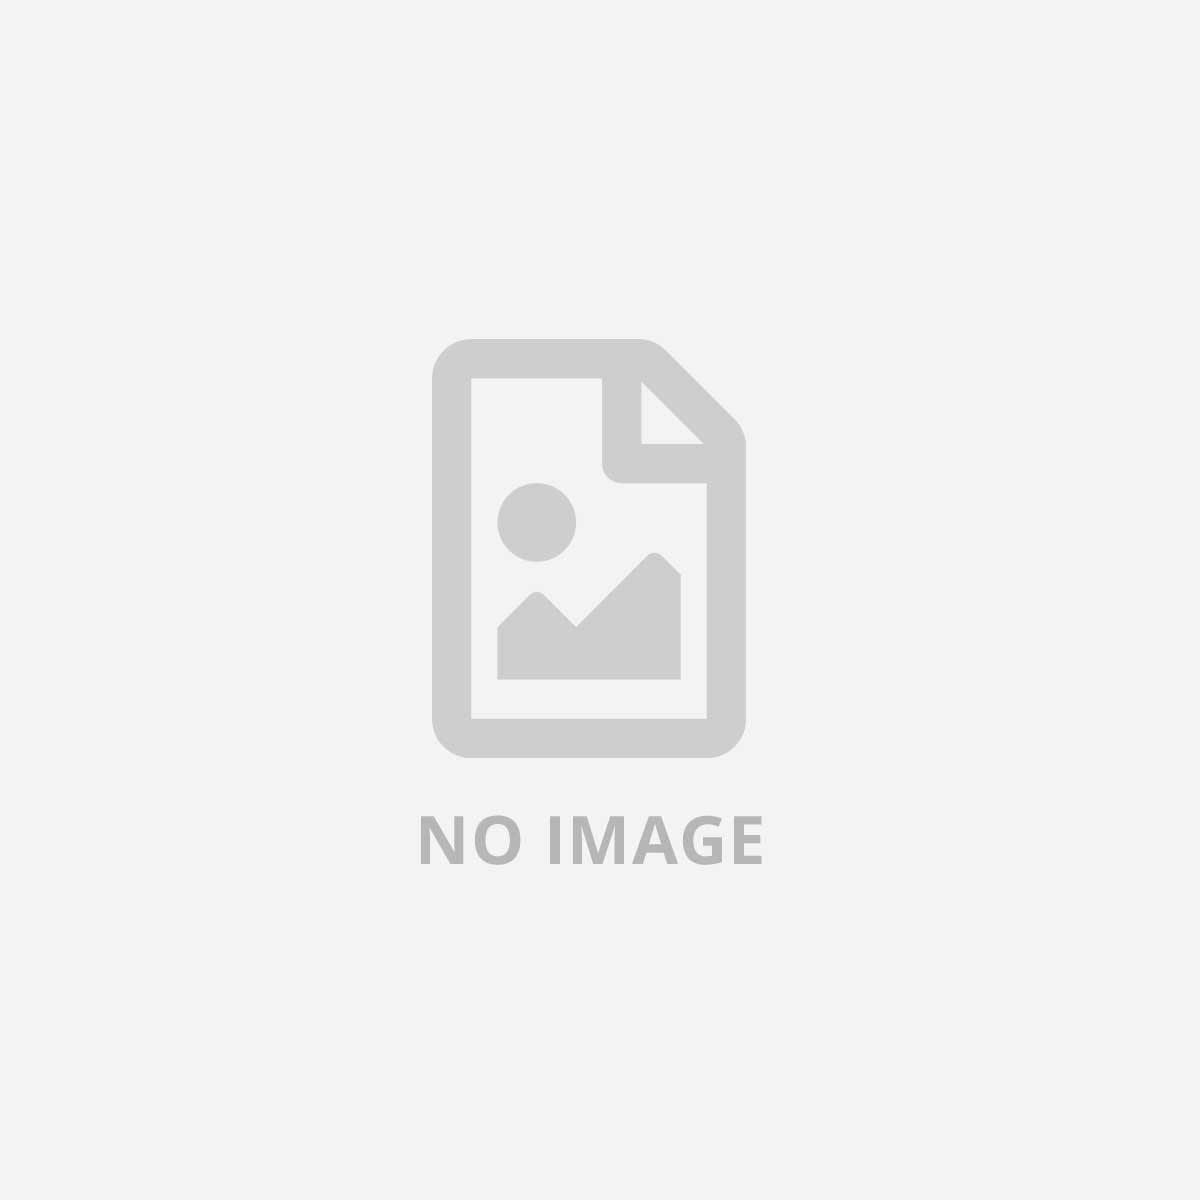 S3PLUS 120GB SSD M.2 SATA-RETAIL 2280